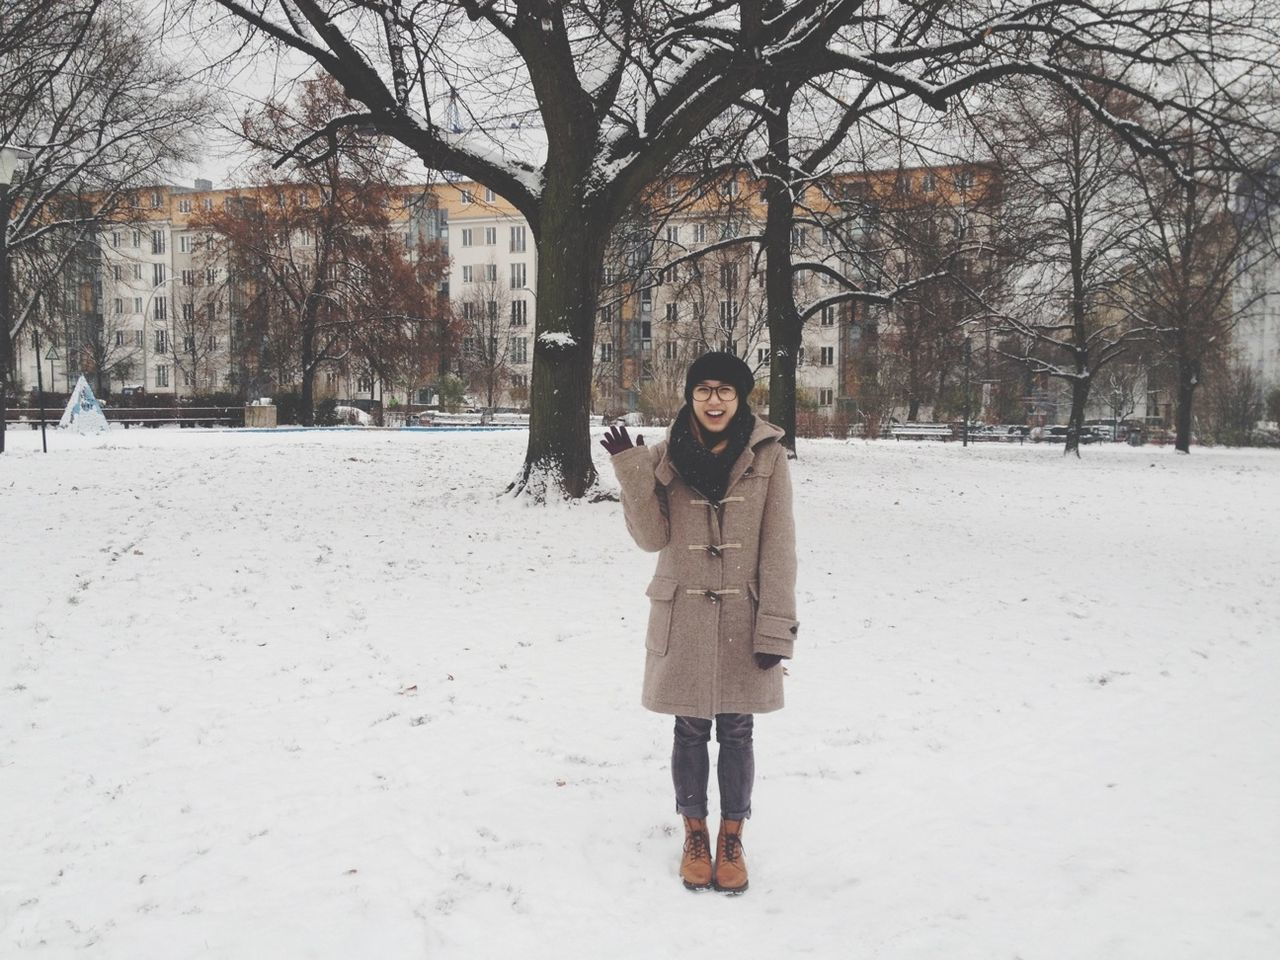 Happy woman standing on snow covered park against bare trees and buildings